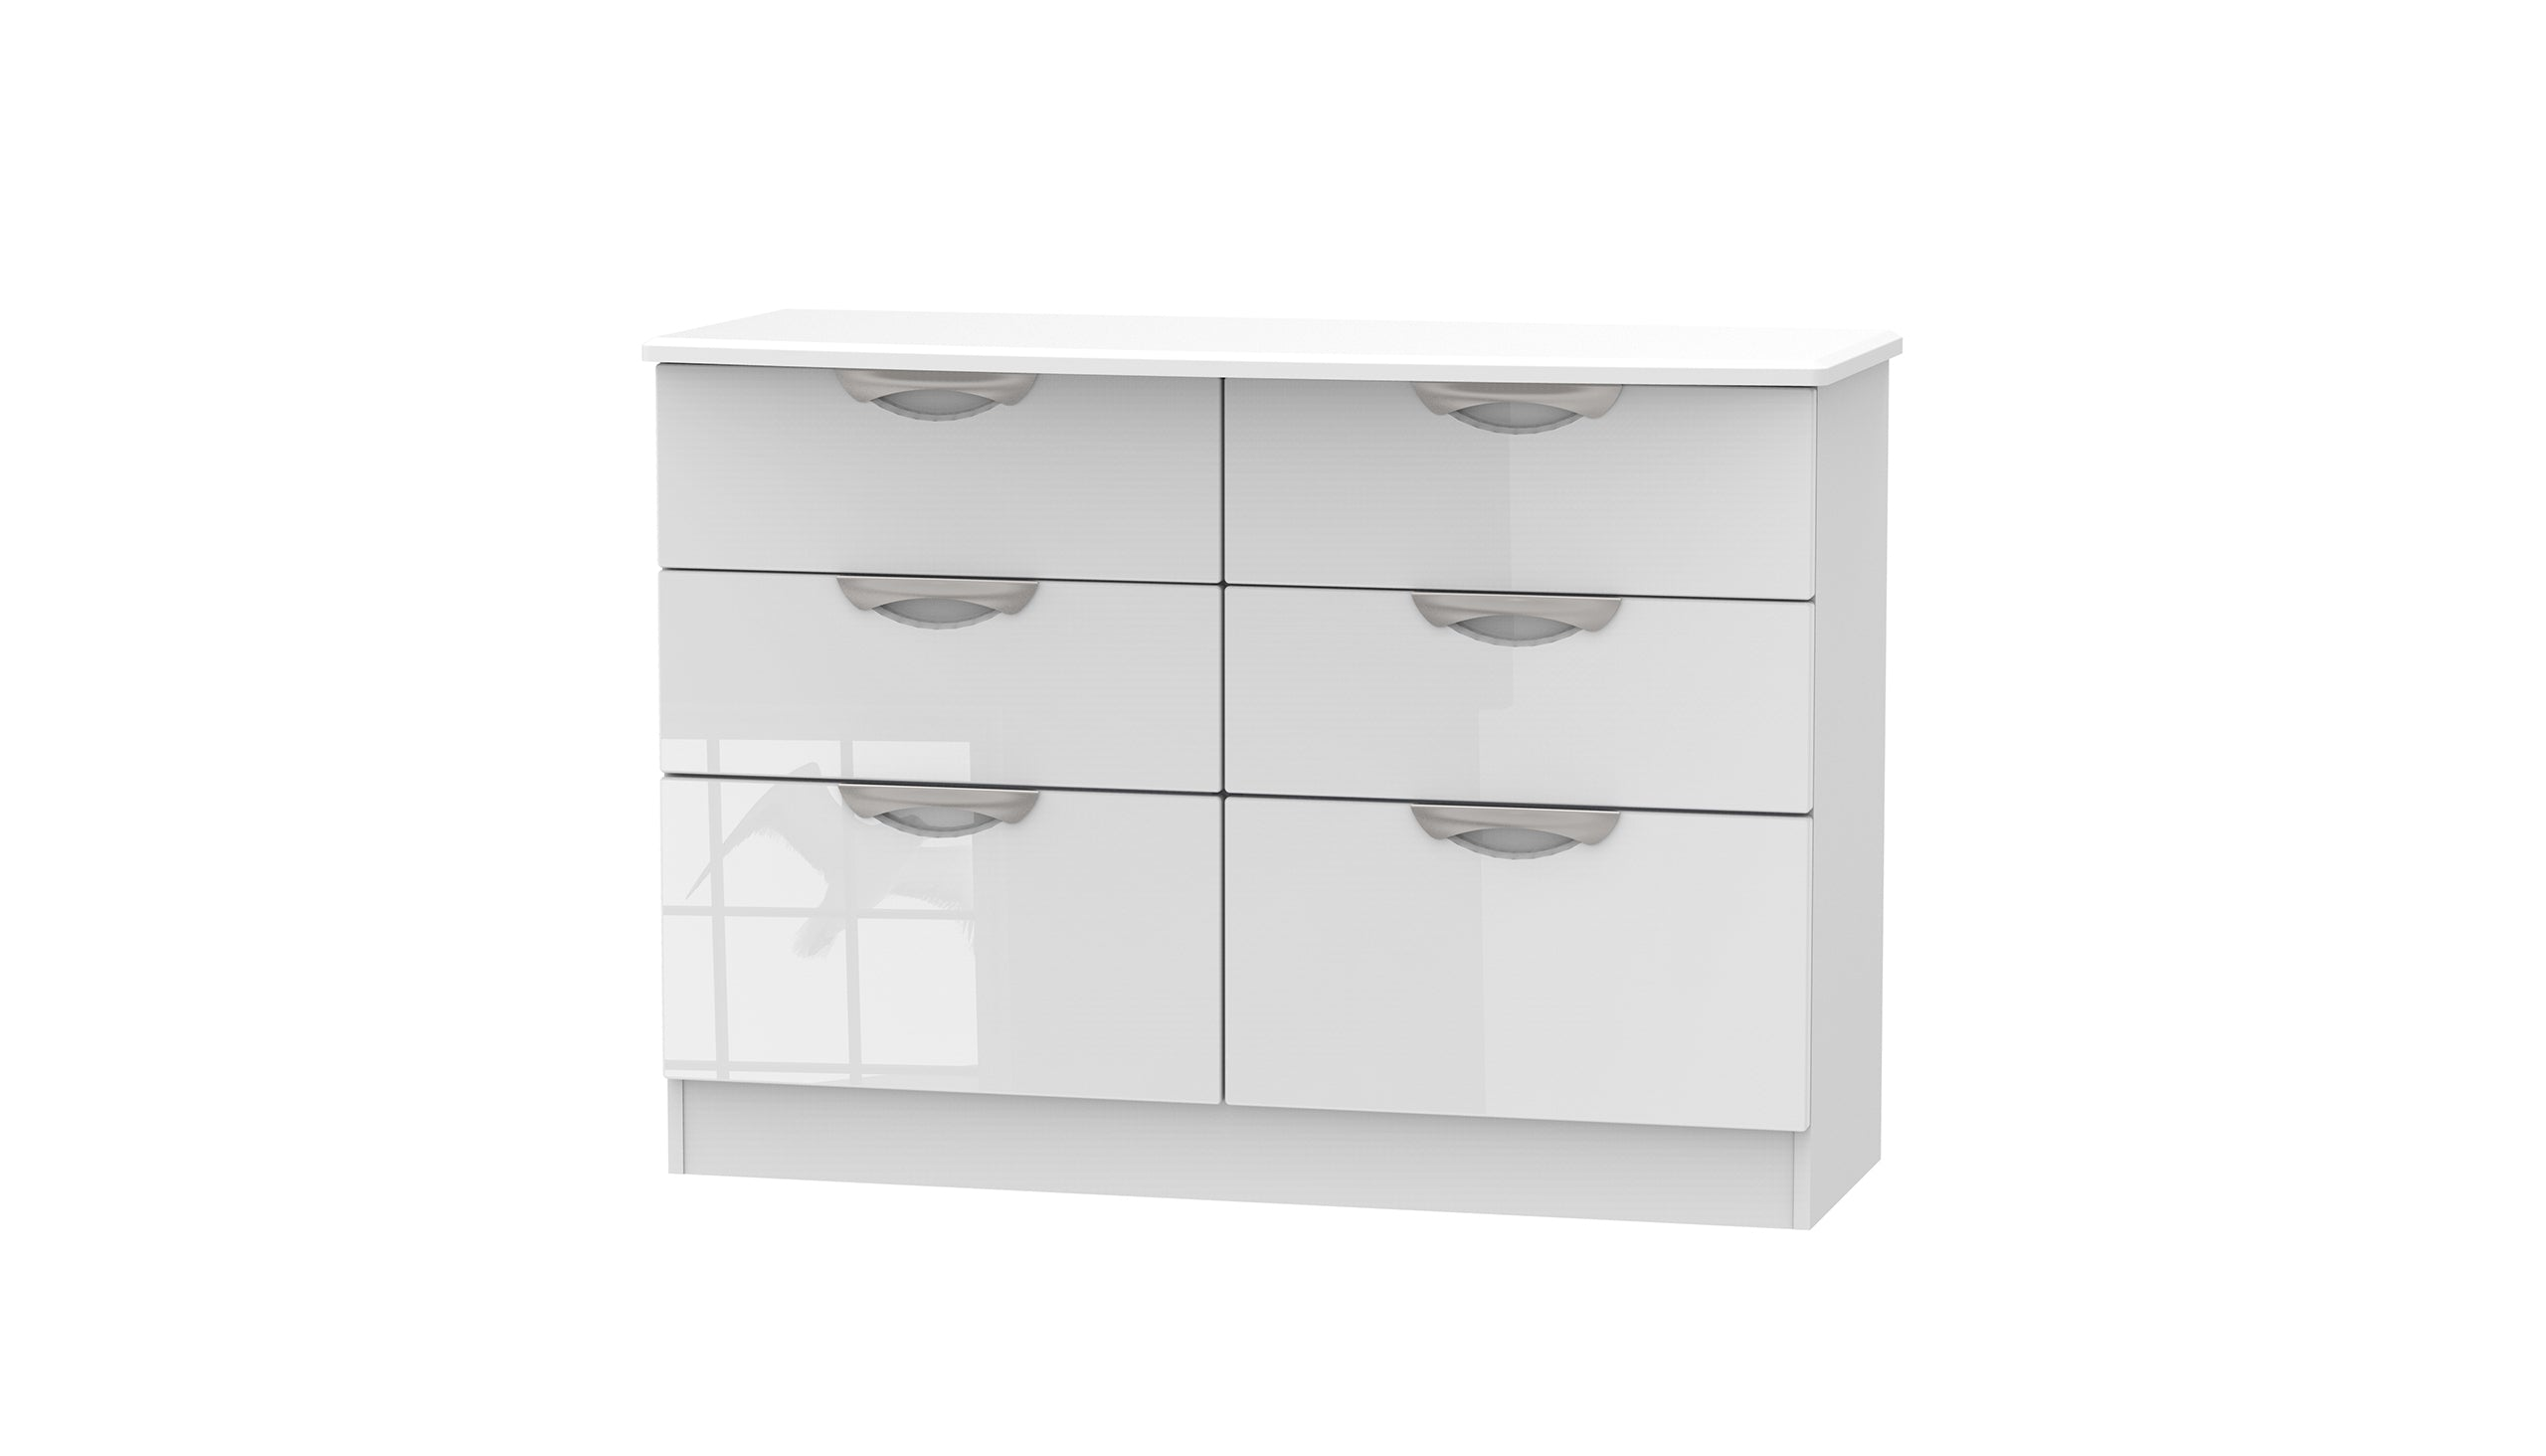 Moda 6 Drawer Wide Chest - AHF Furniture & Carpets